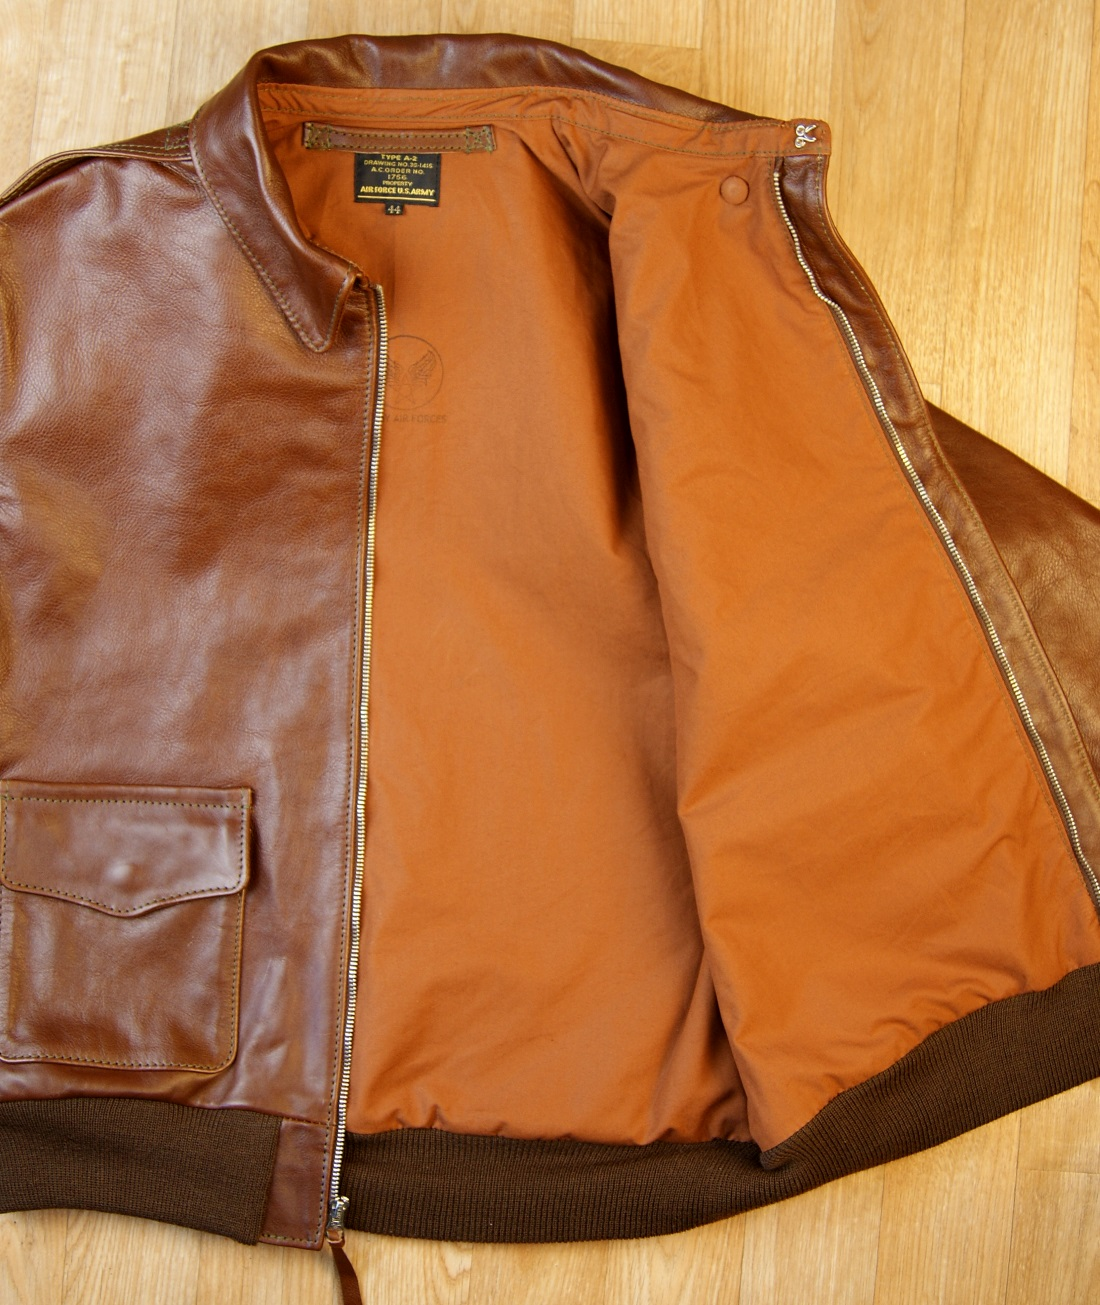 Aero Unknown Maker Russet Vicenza Horsehide KM7 open Rust lining.jpg